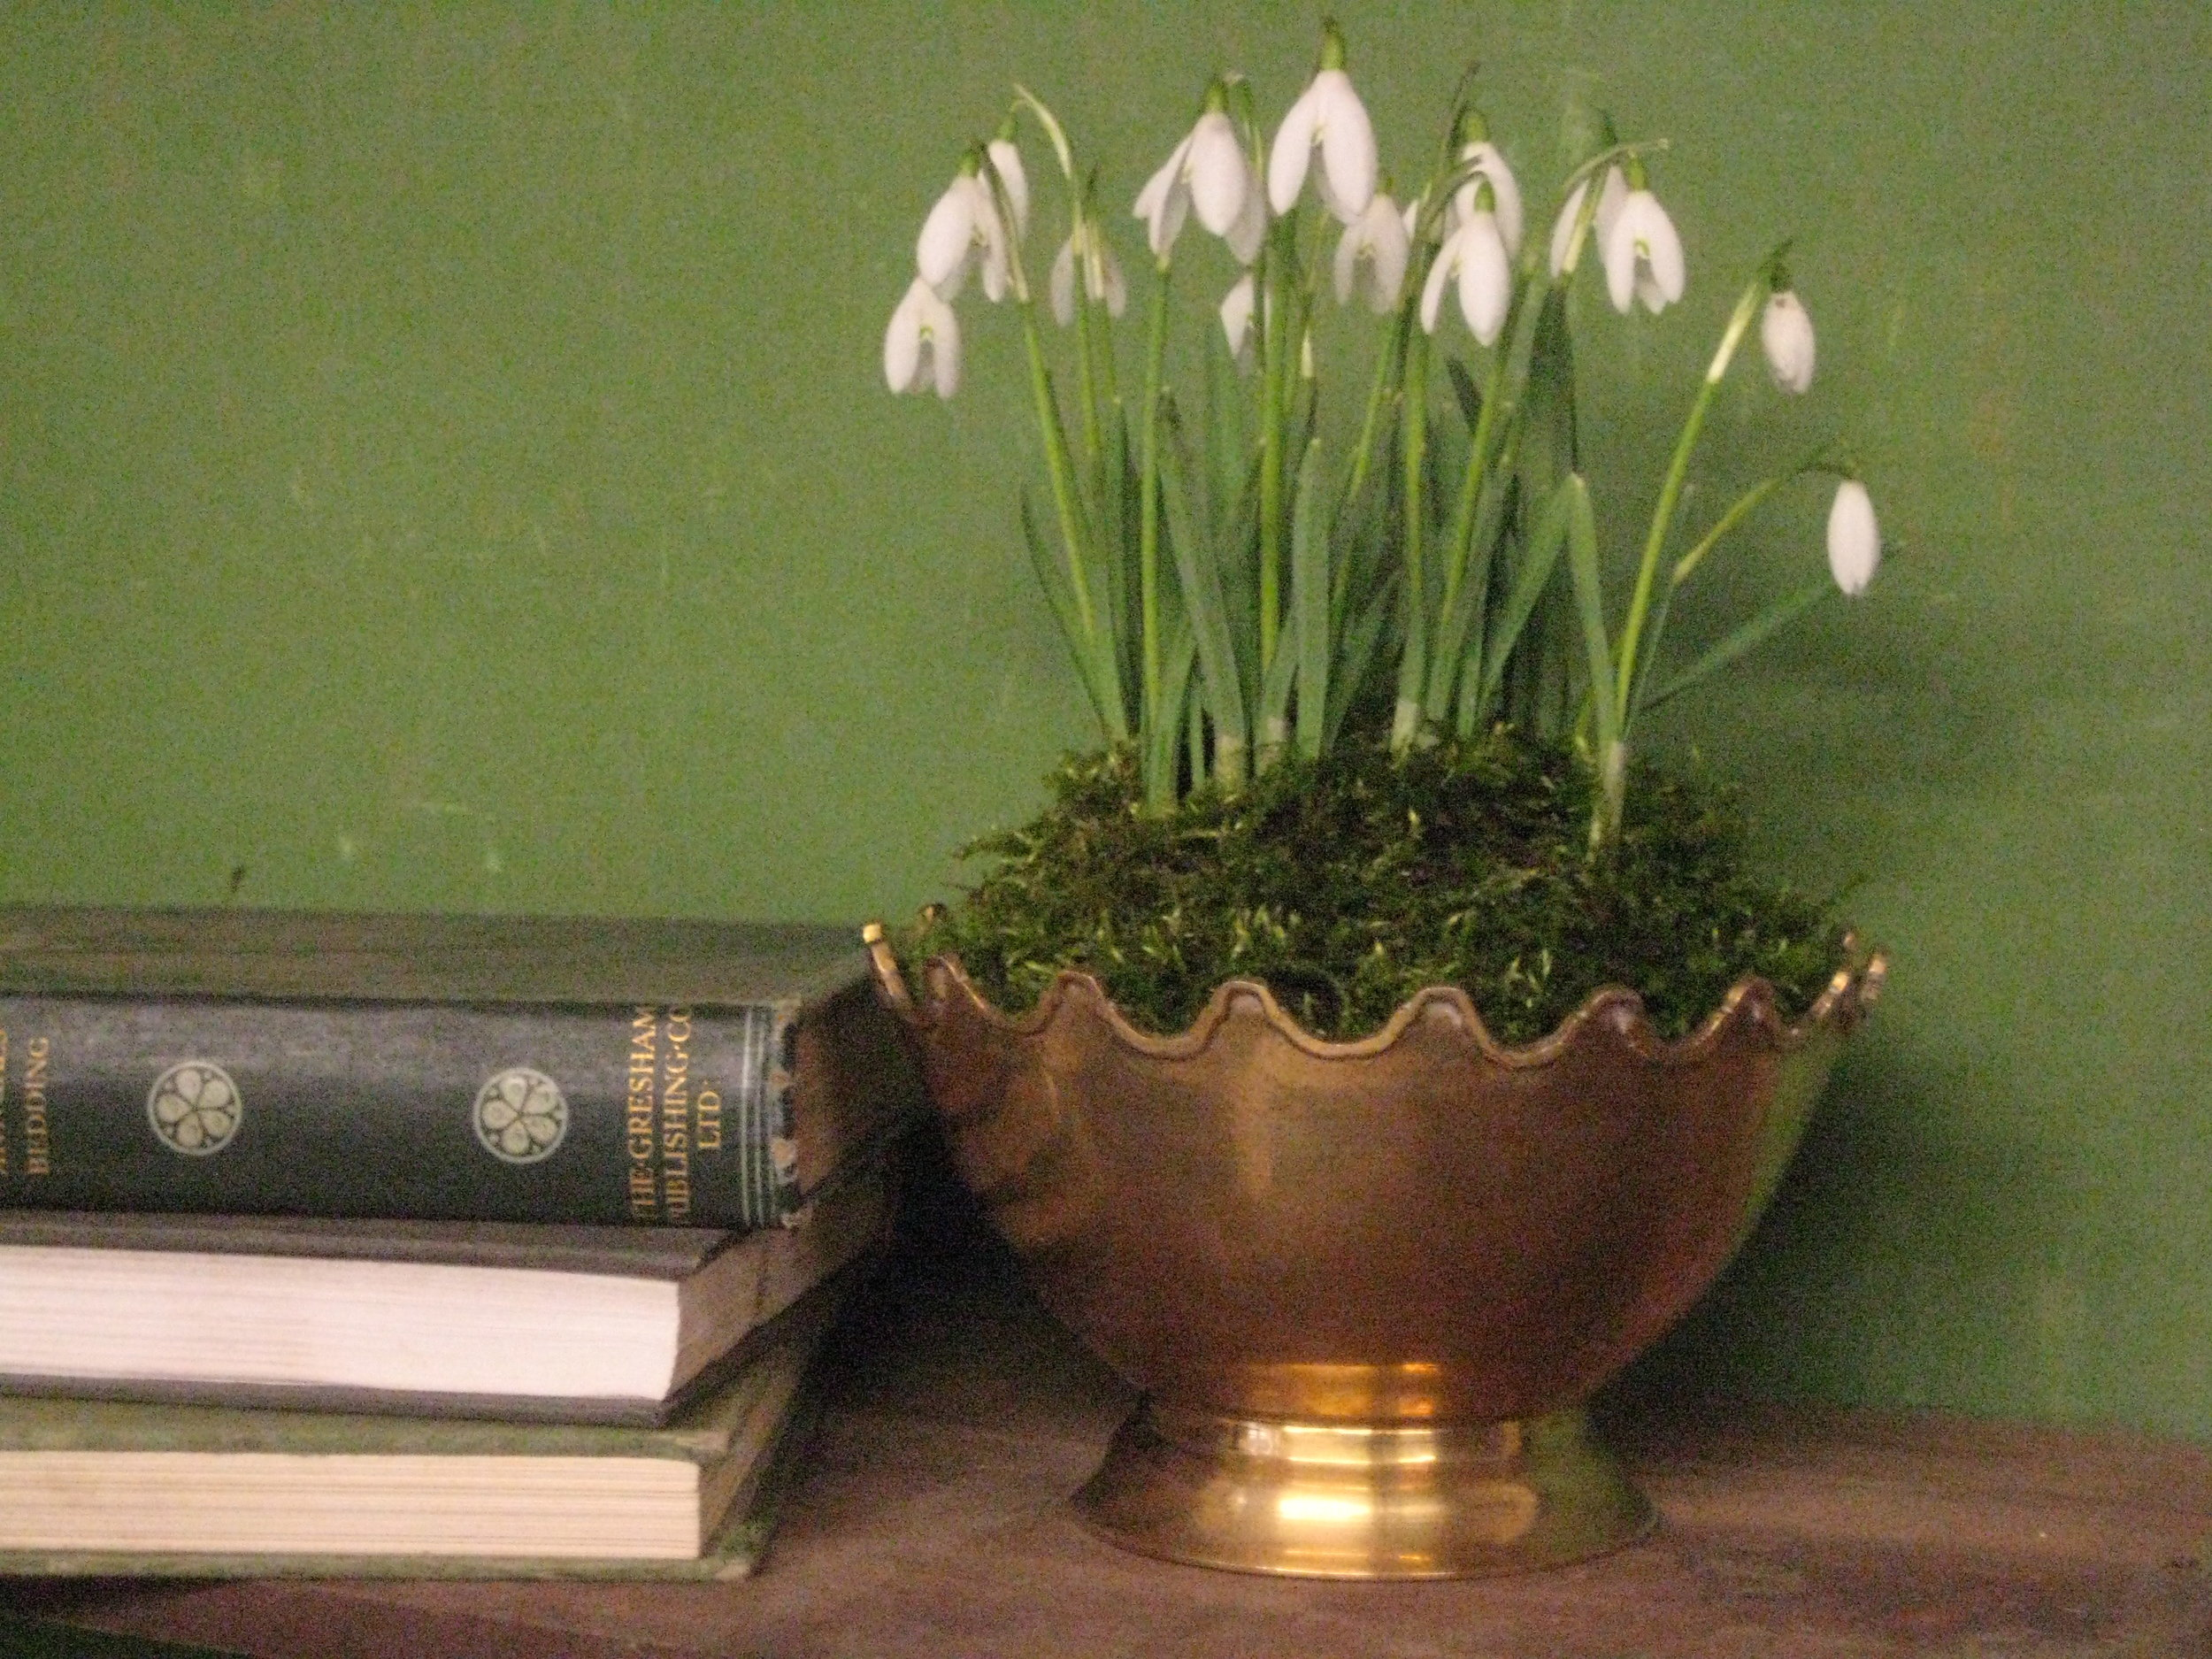 Snowdrops, Galanthus display